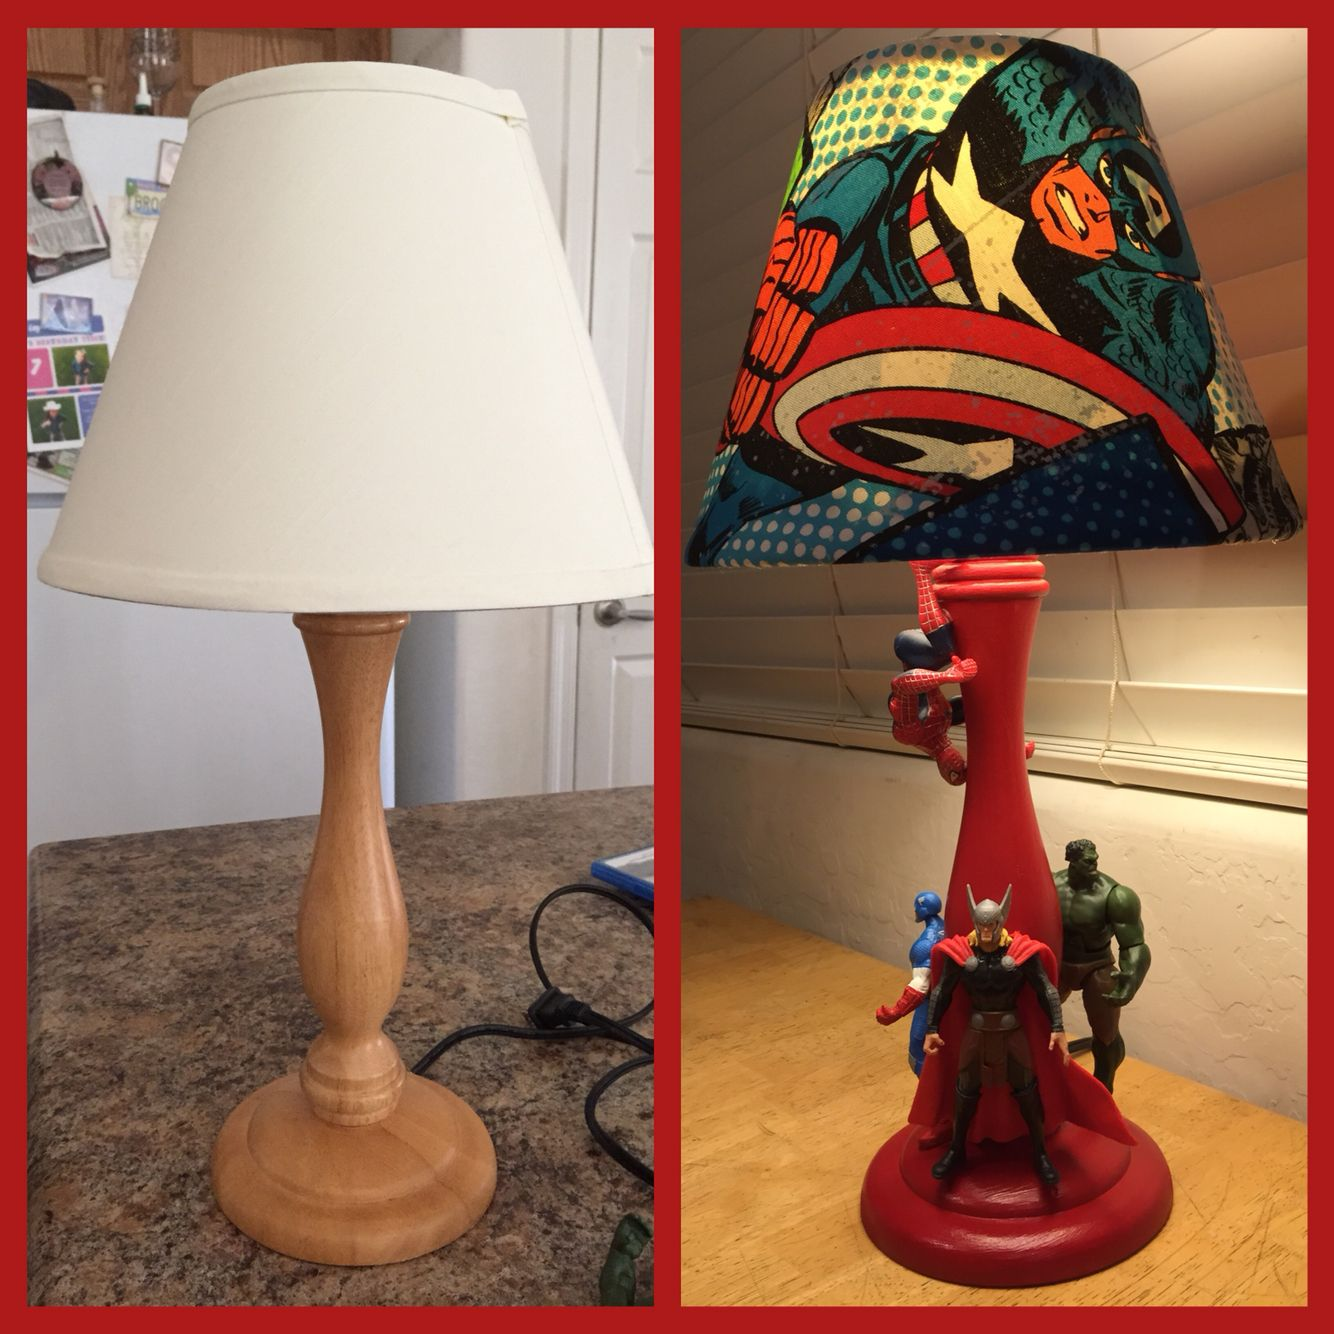 Boys Superhero Room Decor: Superhero Lamp. Before And After Diy. Up-cycle.